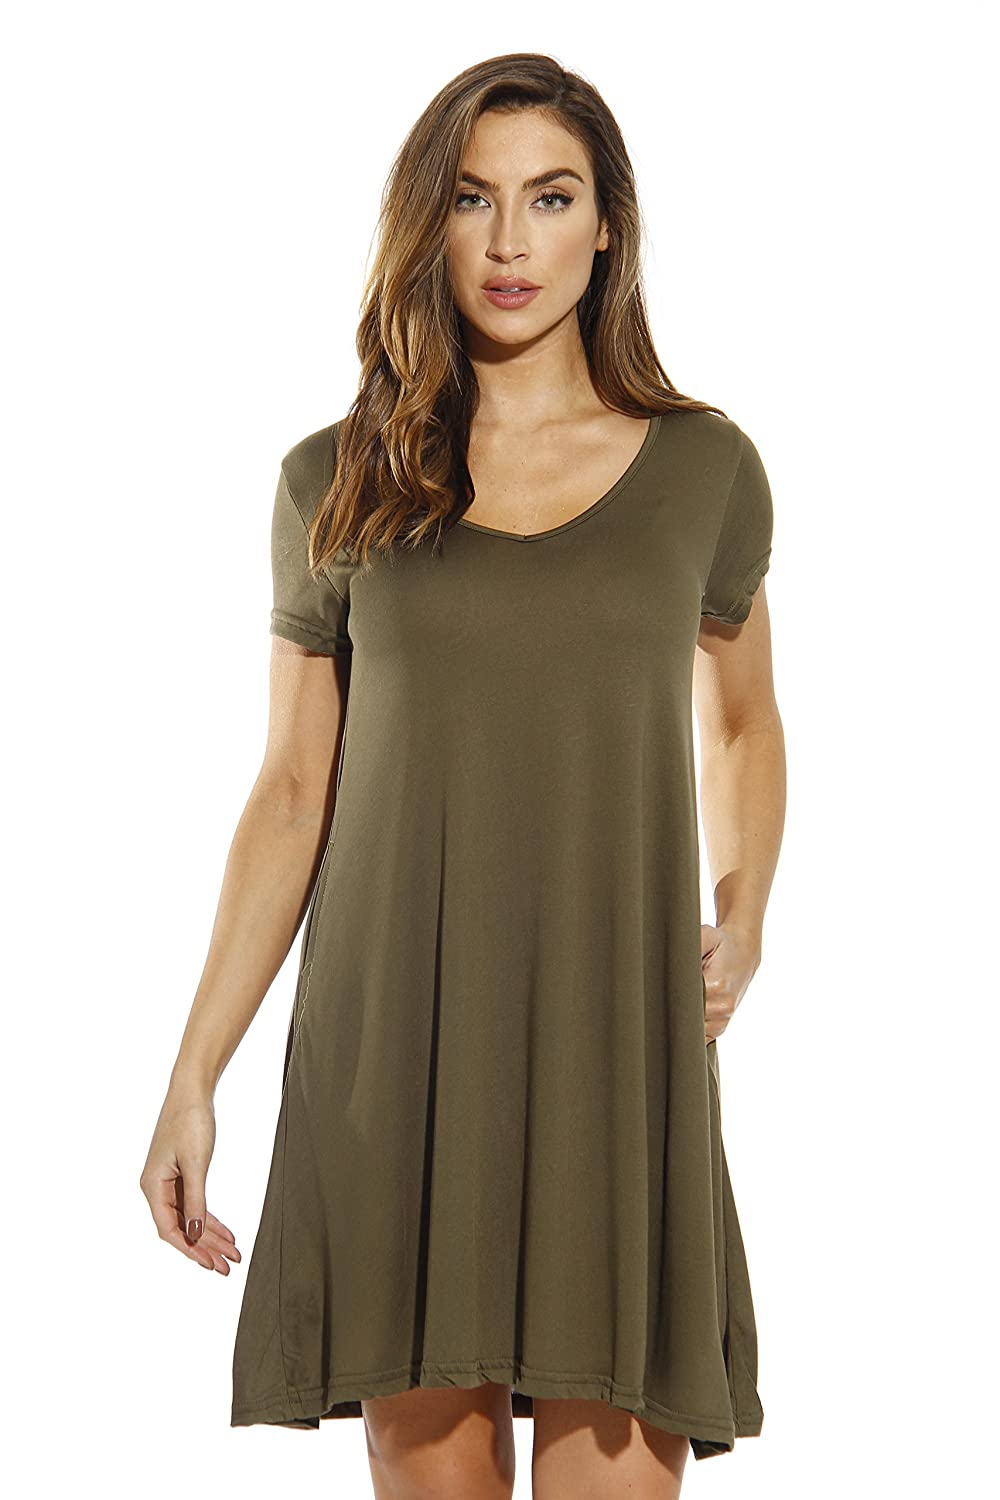 a254e8341c8 Just Love Modal Trapeze Dress Dresses for Women at Amazon Women s Clothing  store